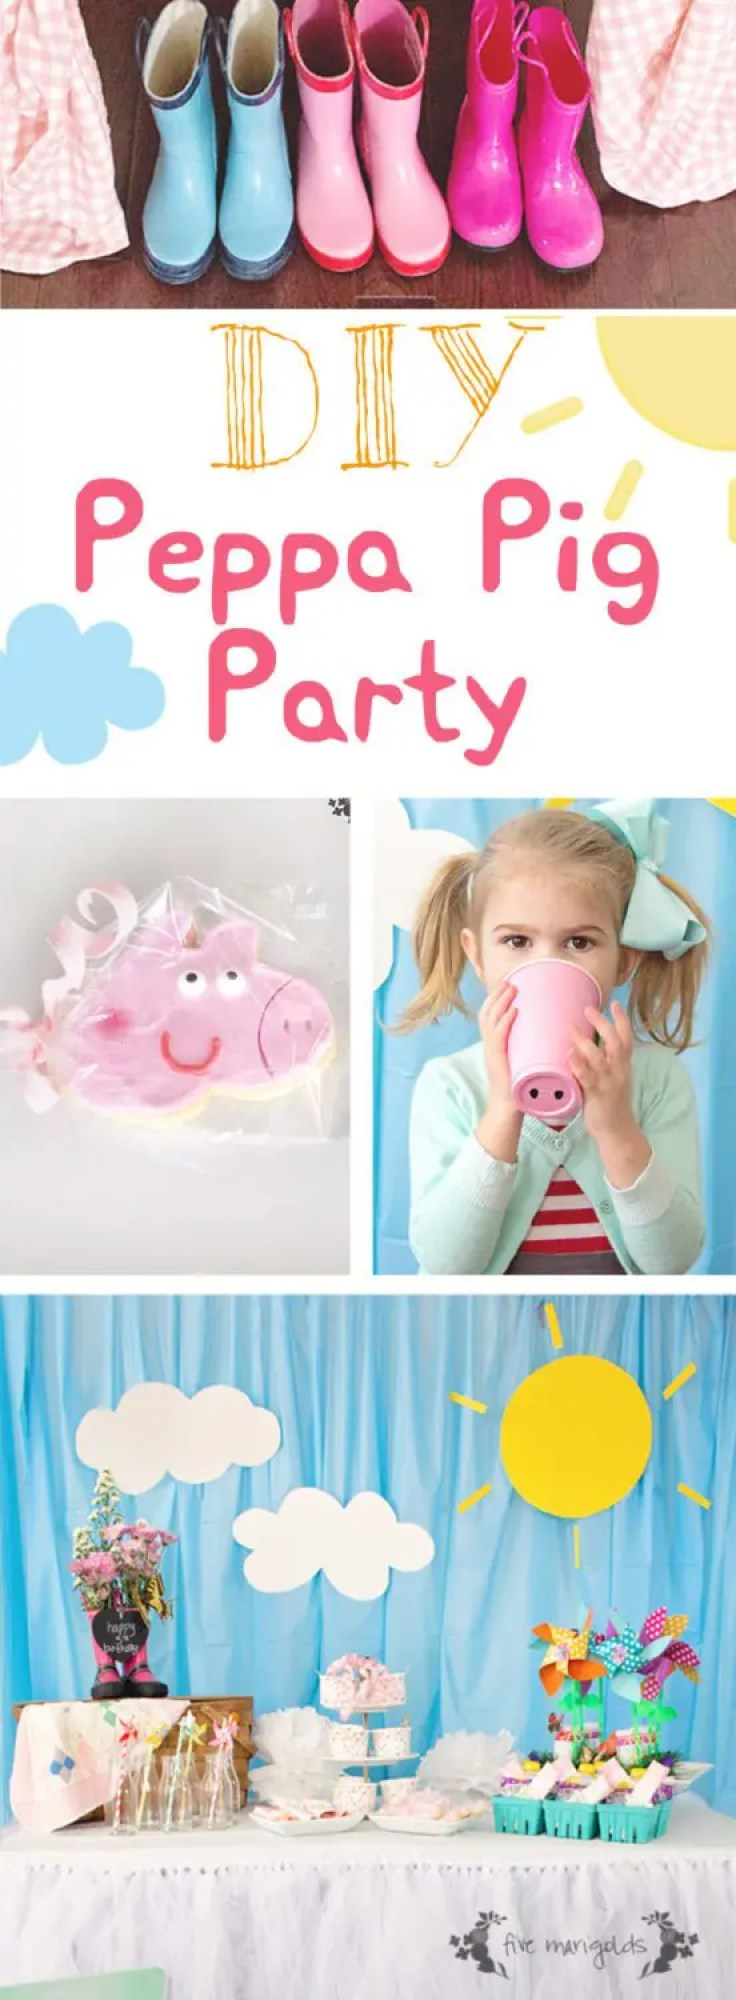 DIY Peppa Pig Birthday Party | Five Marigolds